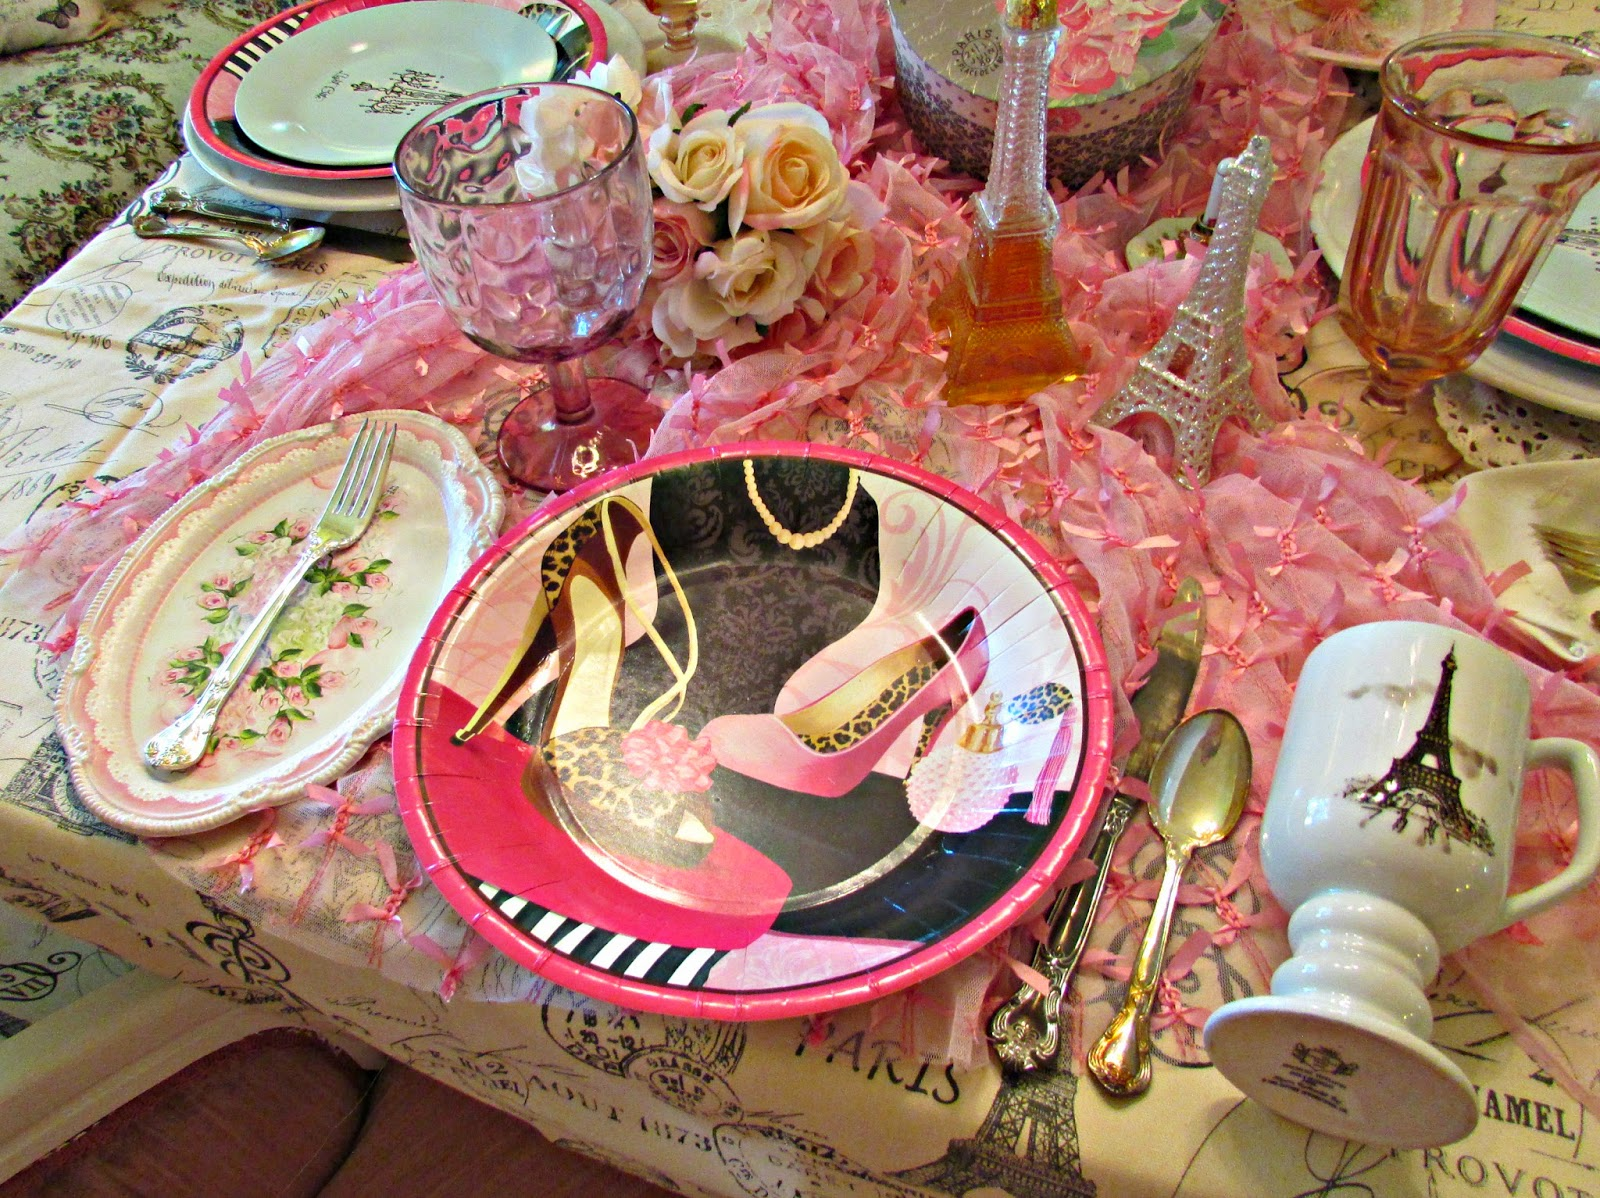 For the table cloth I used a cream and black Paris themed fabric....the table runner is a sheer pink fabric with little satin bows tied on it. & Pennyu0027s Vintage Home: Dreaming of a Paris Luncheon